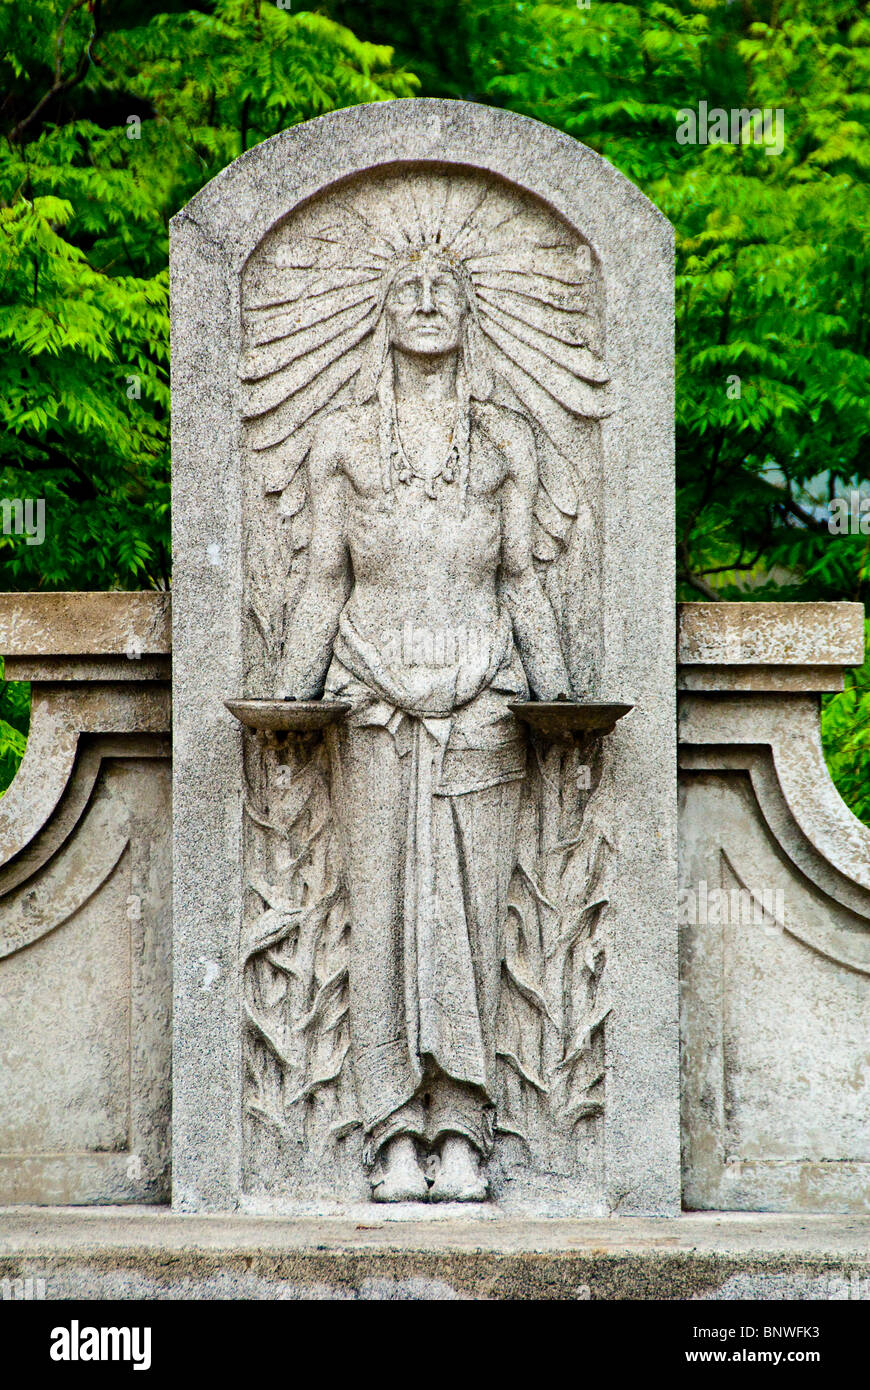 Comanche Indian bas-relief figure, once a fountain, by Waldine Tauch on Commerce Street Bridge, San Antonio, Texas, - Stock Image